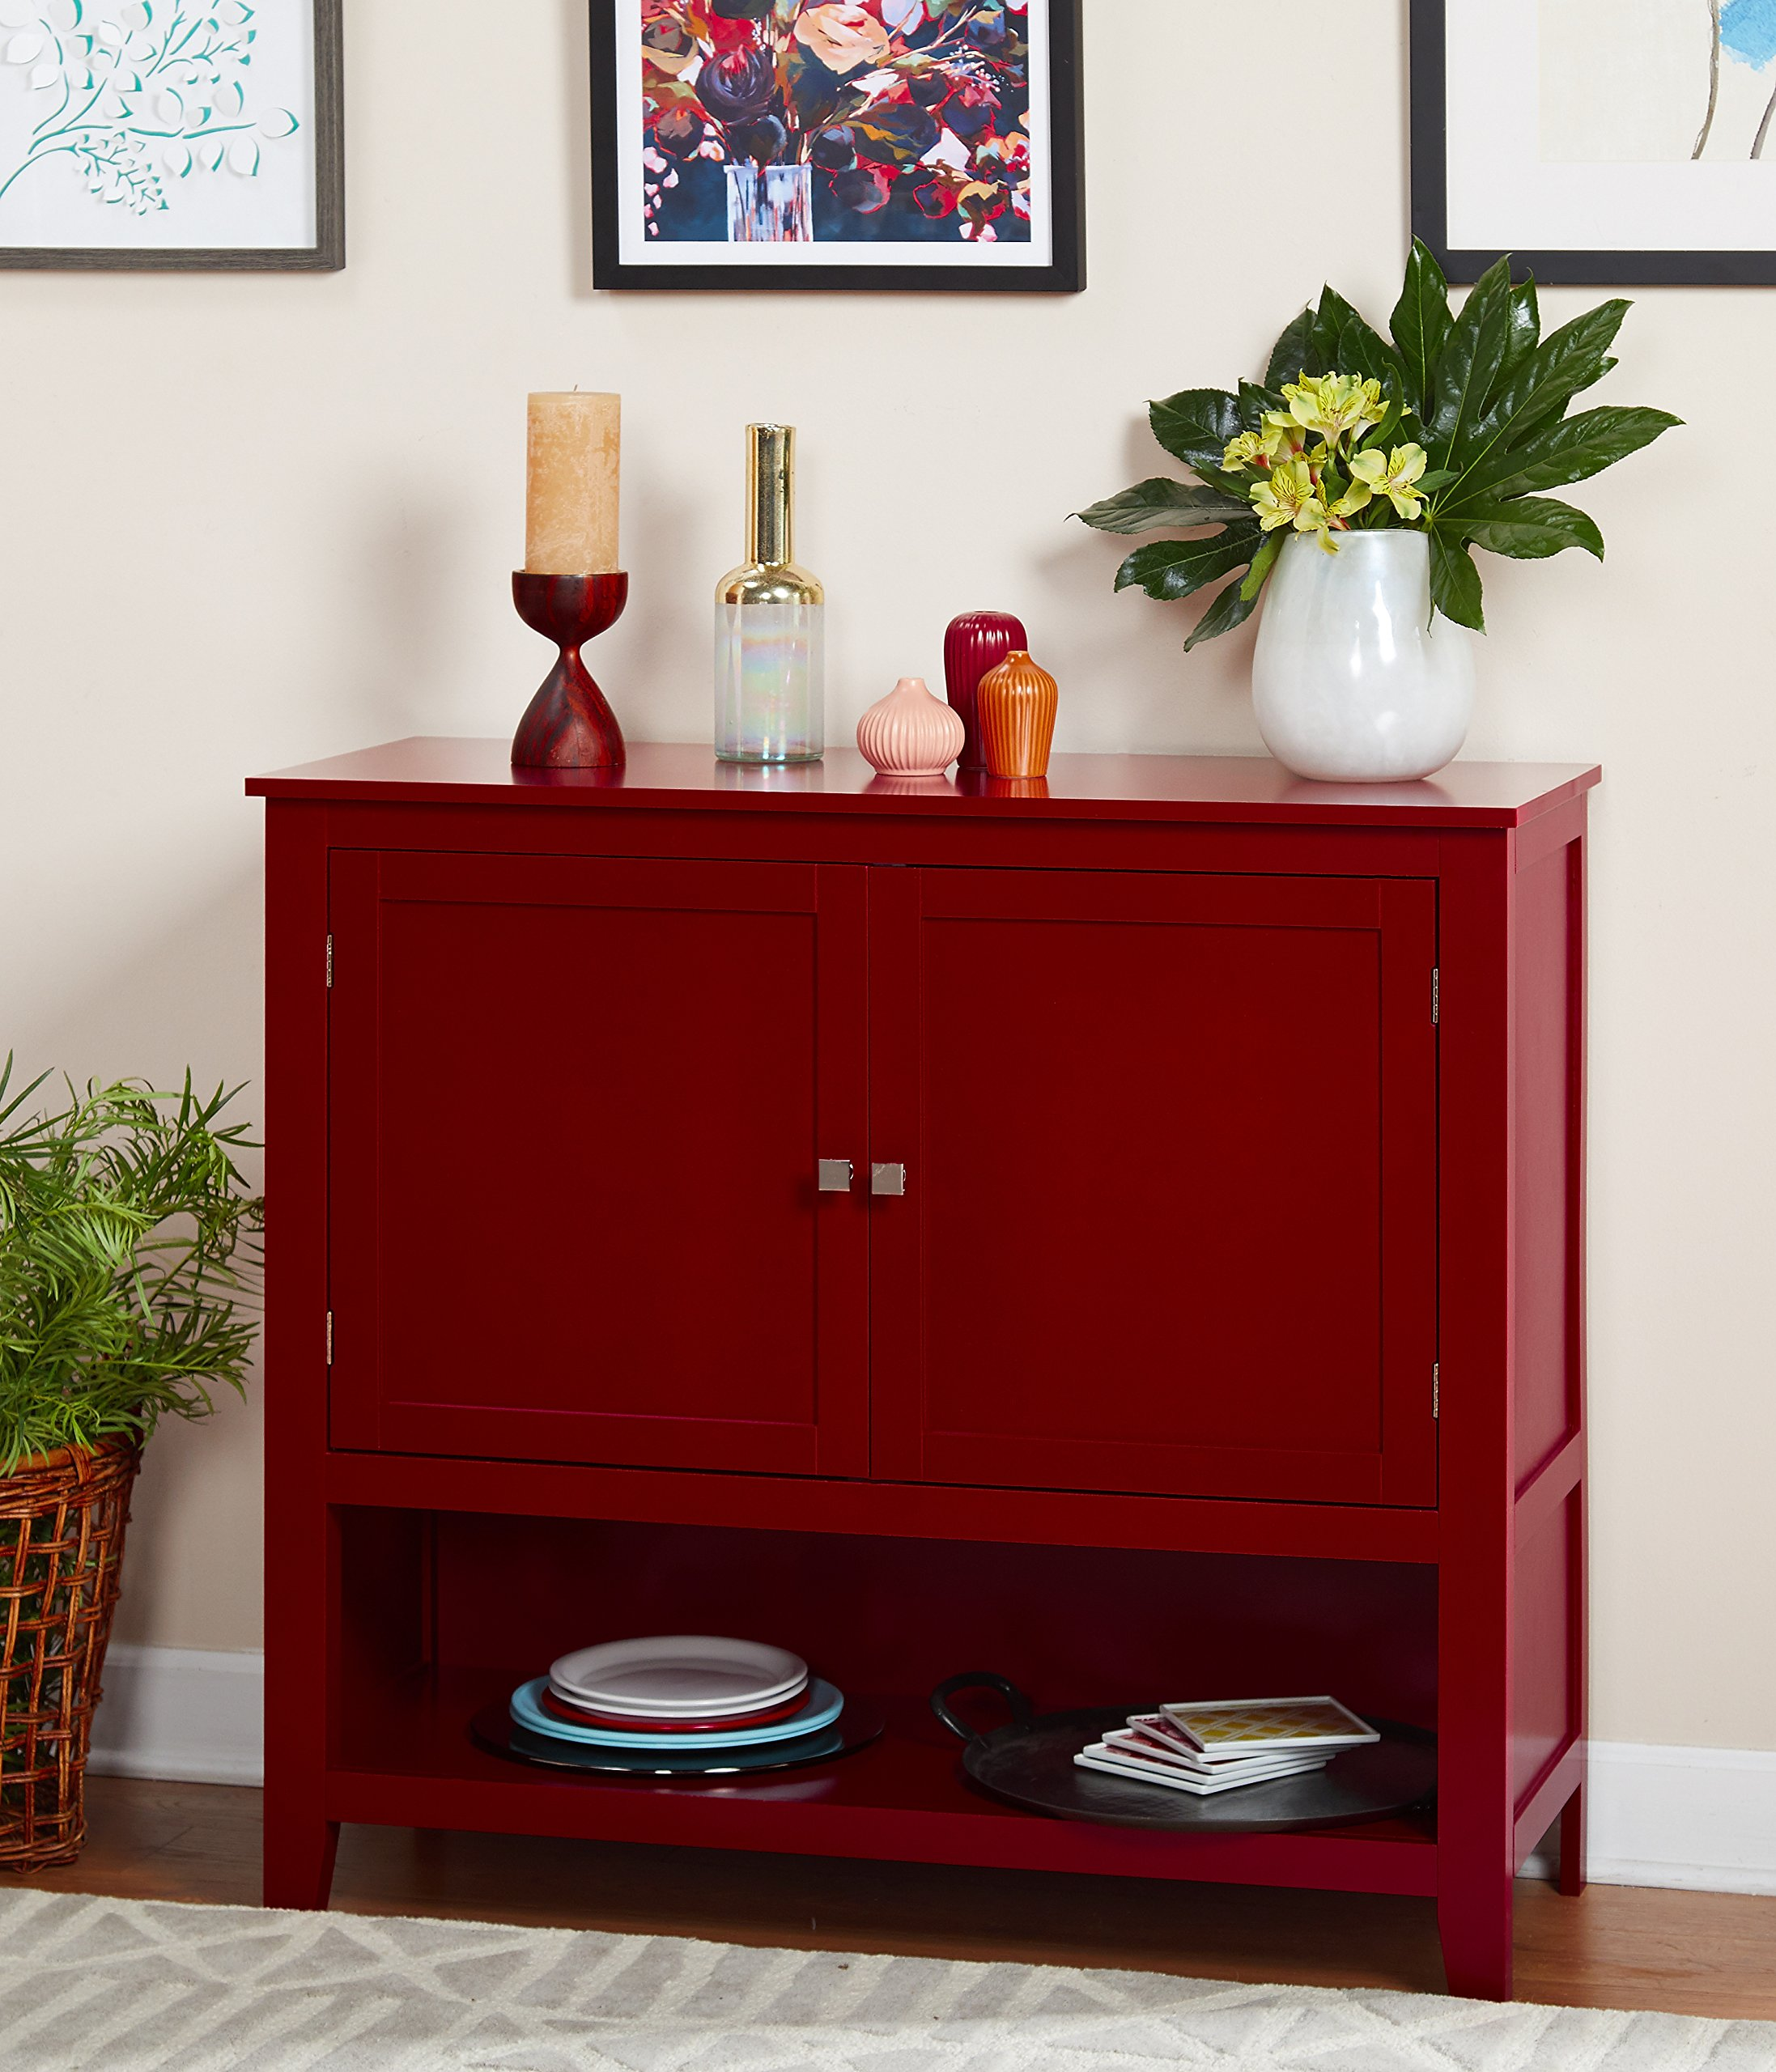 Target Marketing Systems 11001RED Montego Collection Buffet Cabinet, Red by Target Marketing Systems (Image #2)